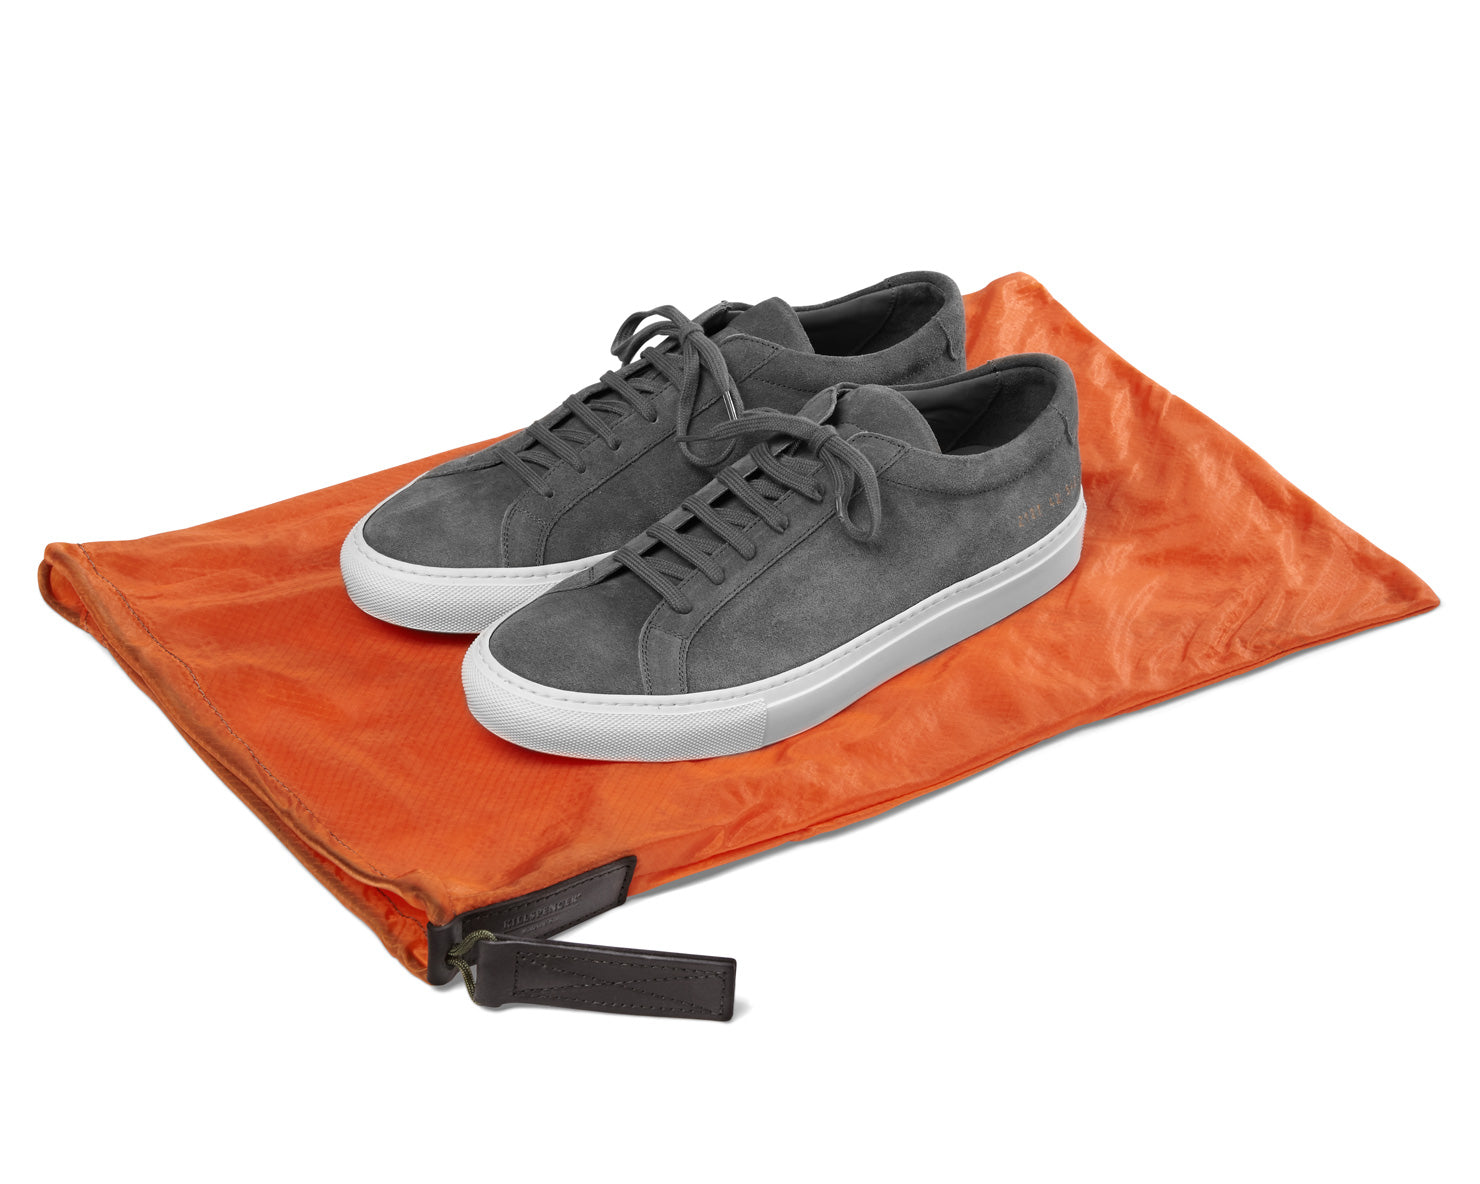 PARACHUTE BAG 2.0 | KILLSPENCER® - Orange Parachute